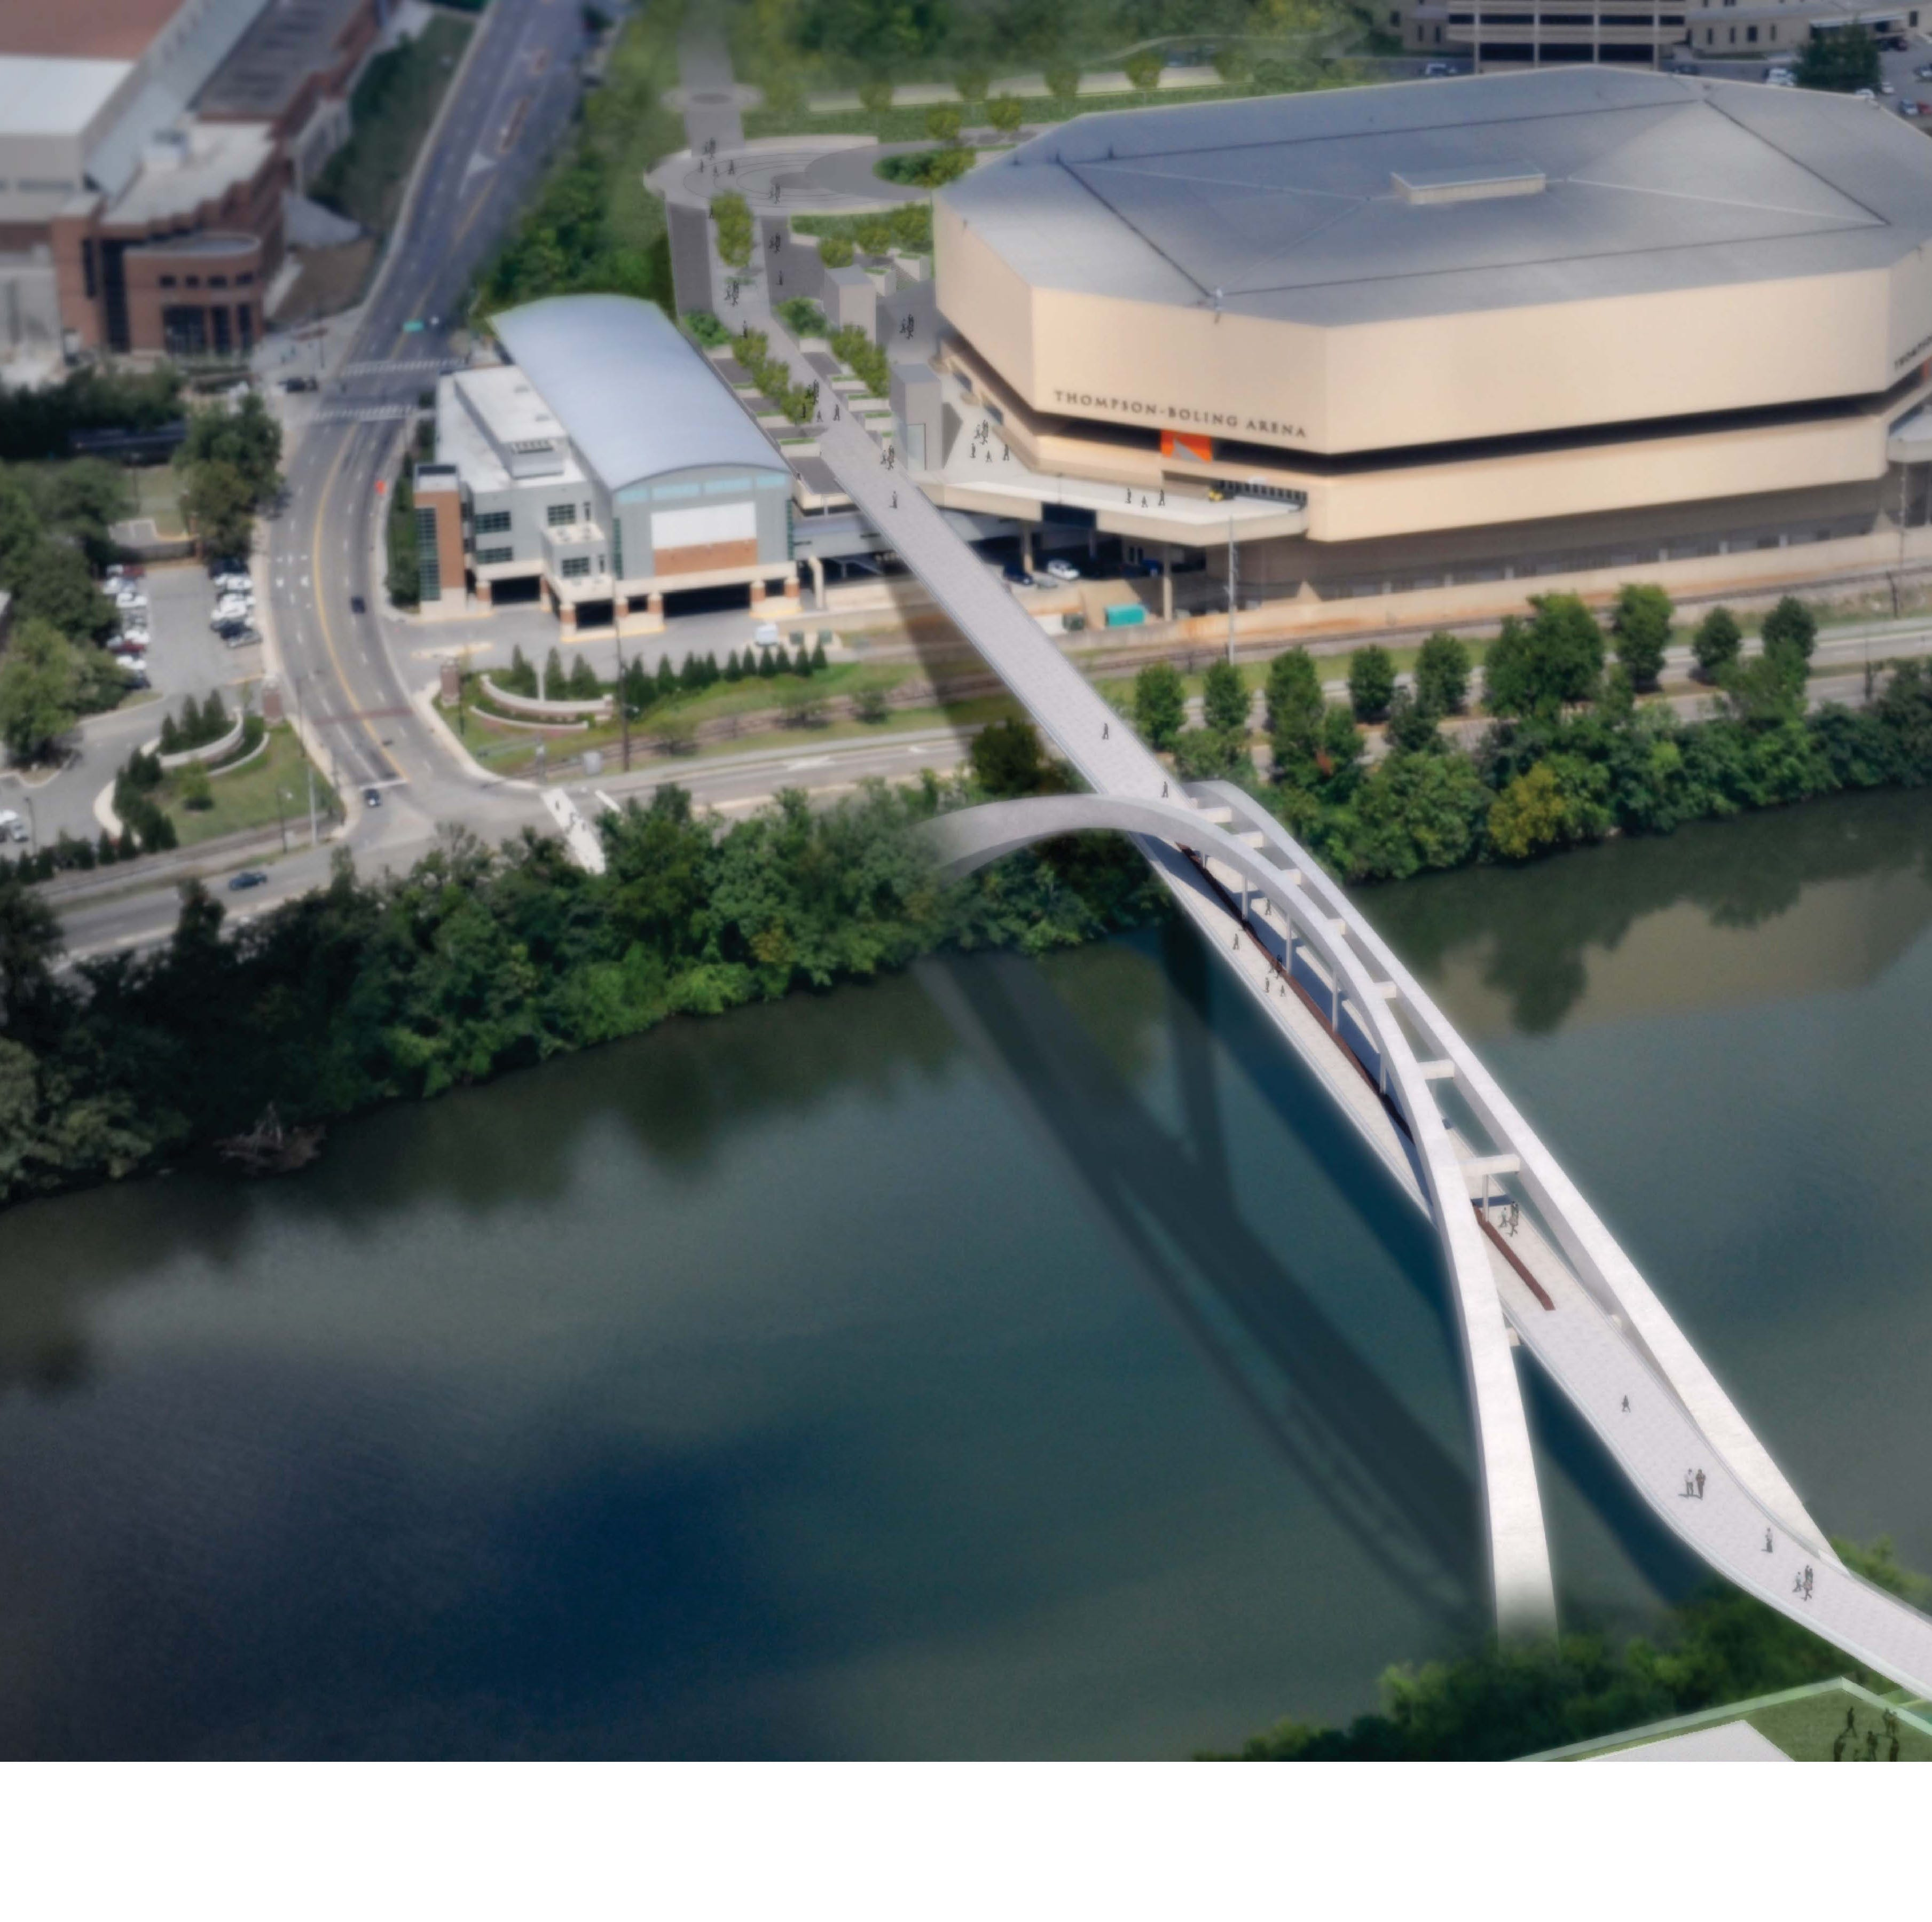 Fulmer's referenced pedestrian bridge spanning Tennessee River is long way off